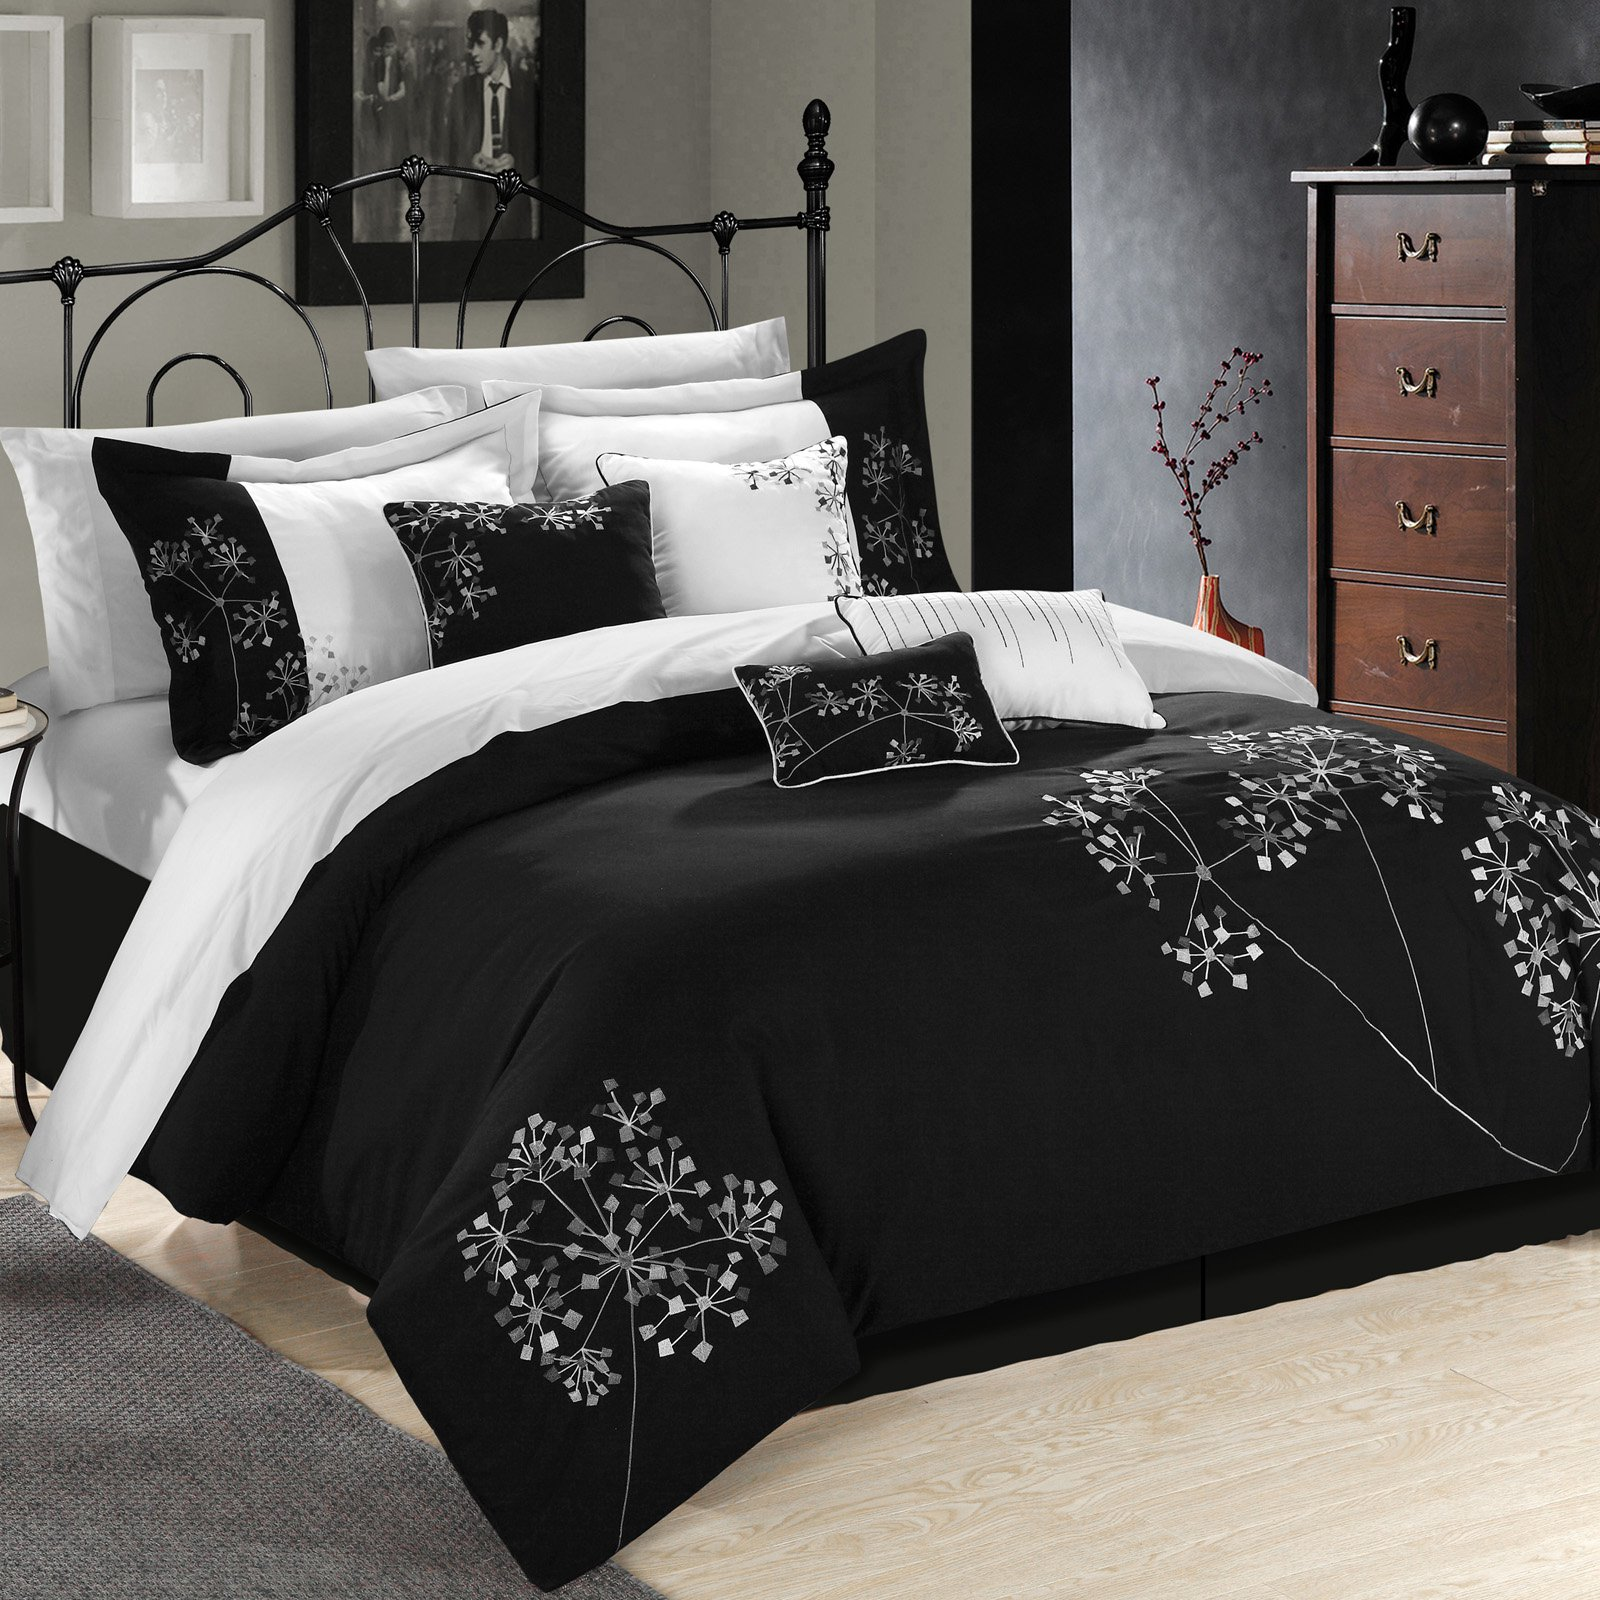 Chic Home Black and White Embroidered Floral Bed in a Bag Comforter Set